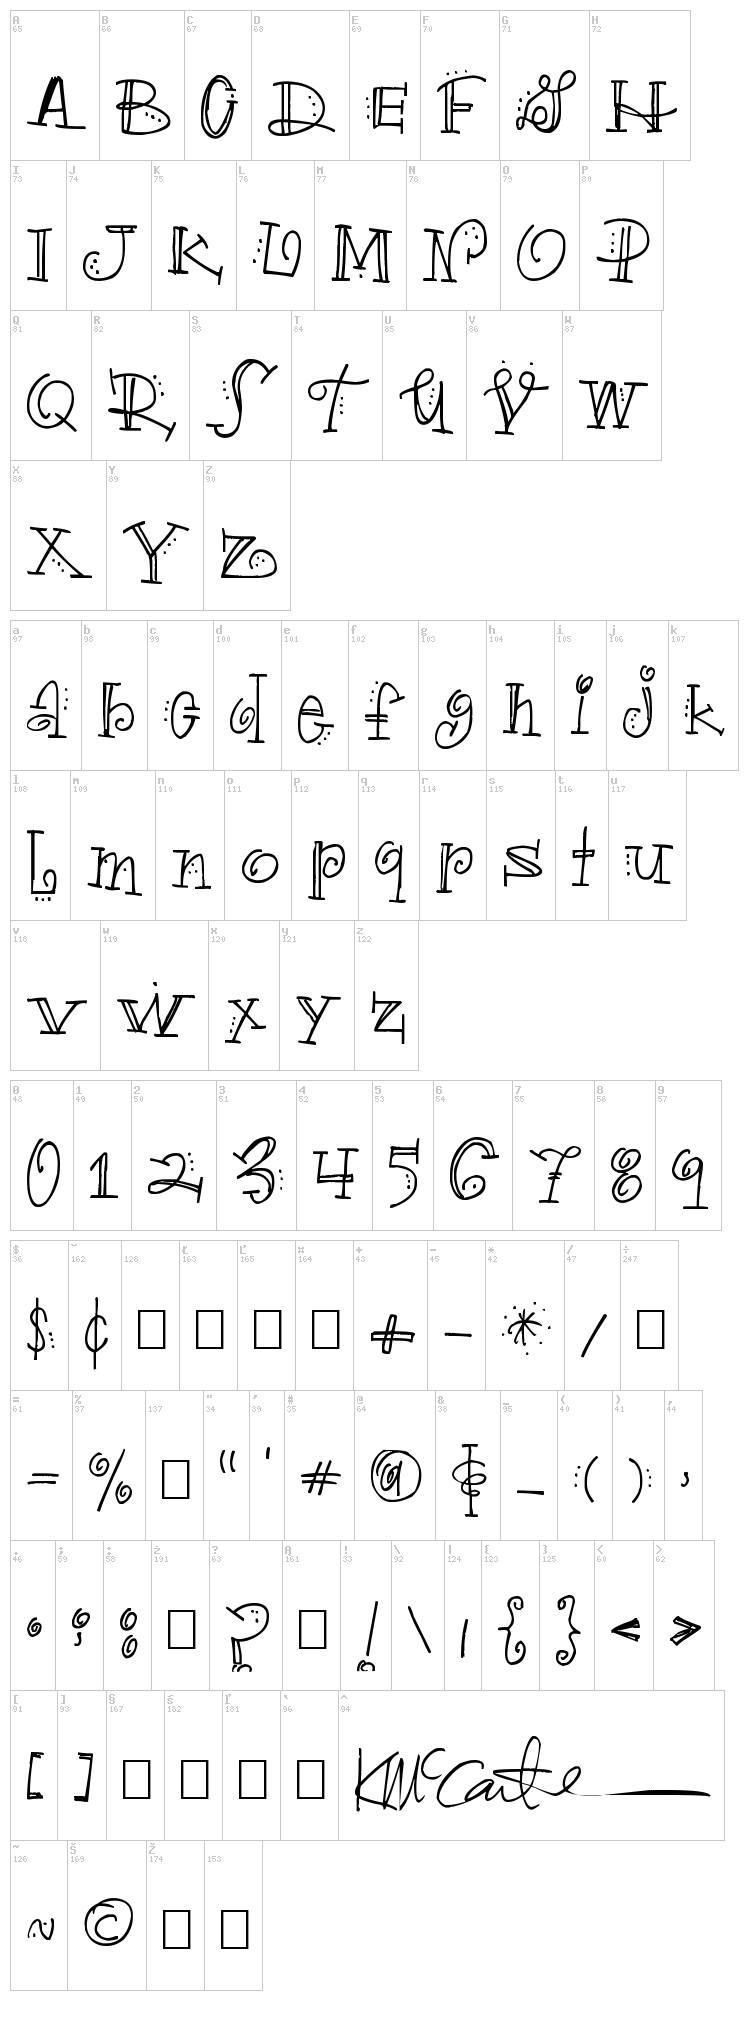 Truckle font map